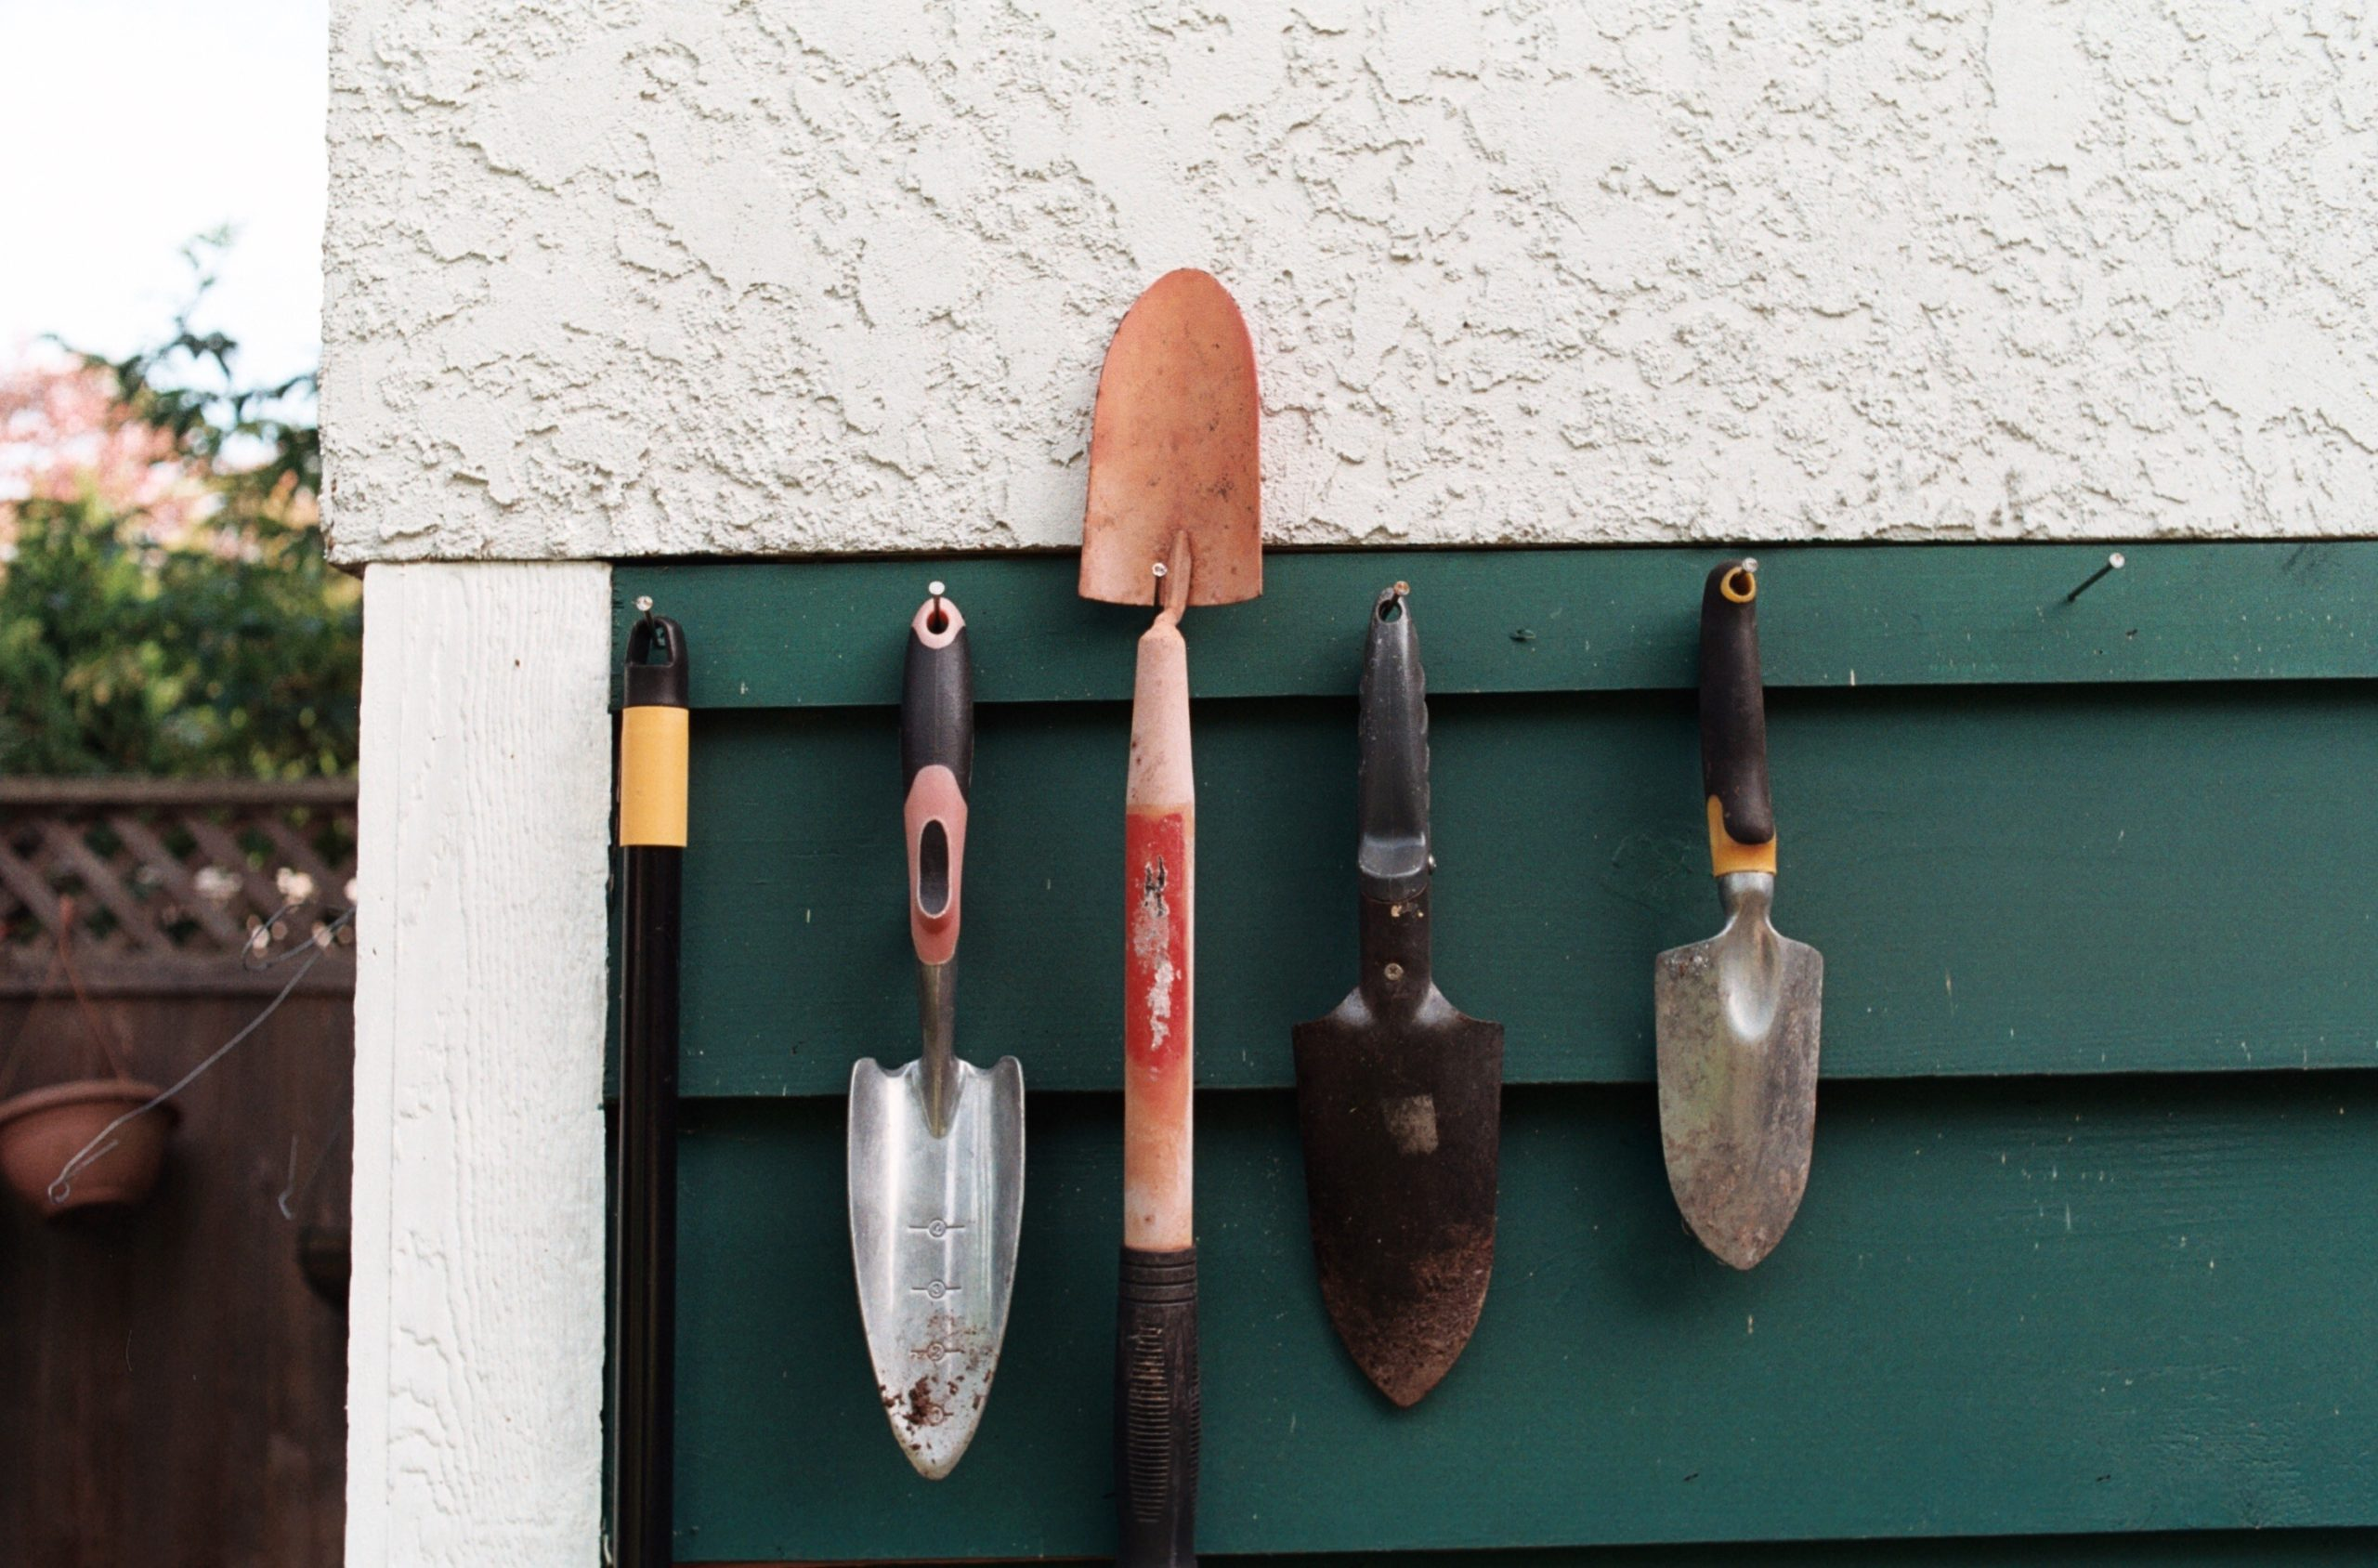 Why are gardening tools so important